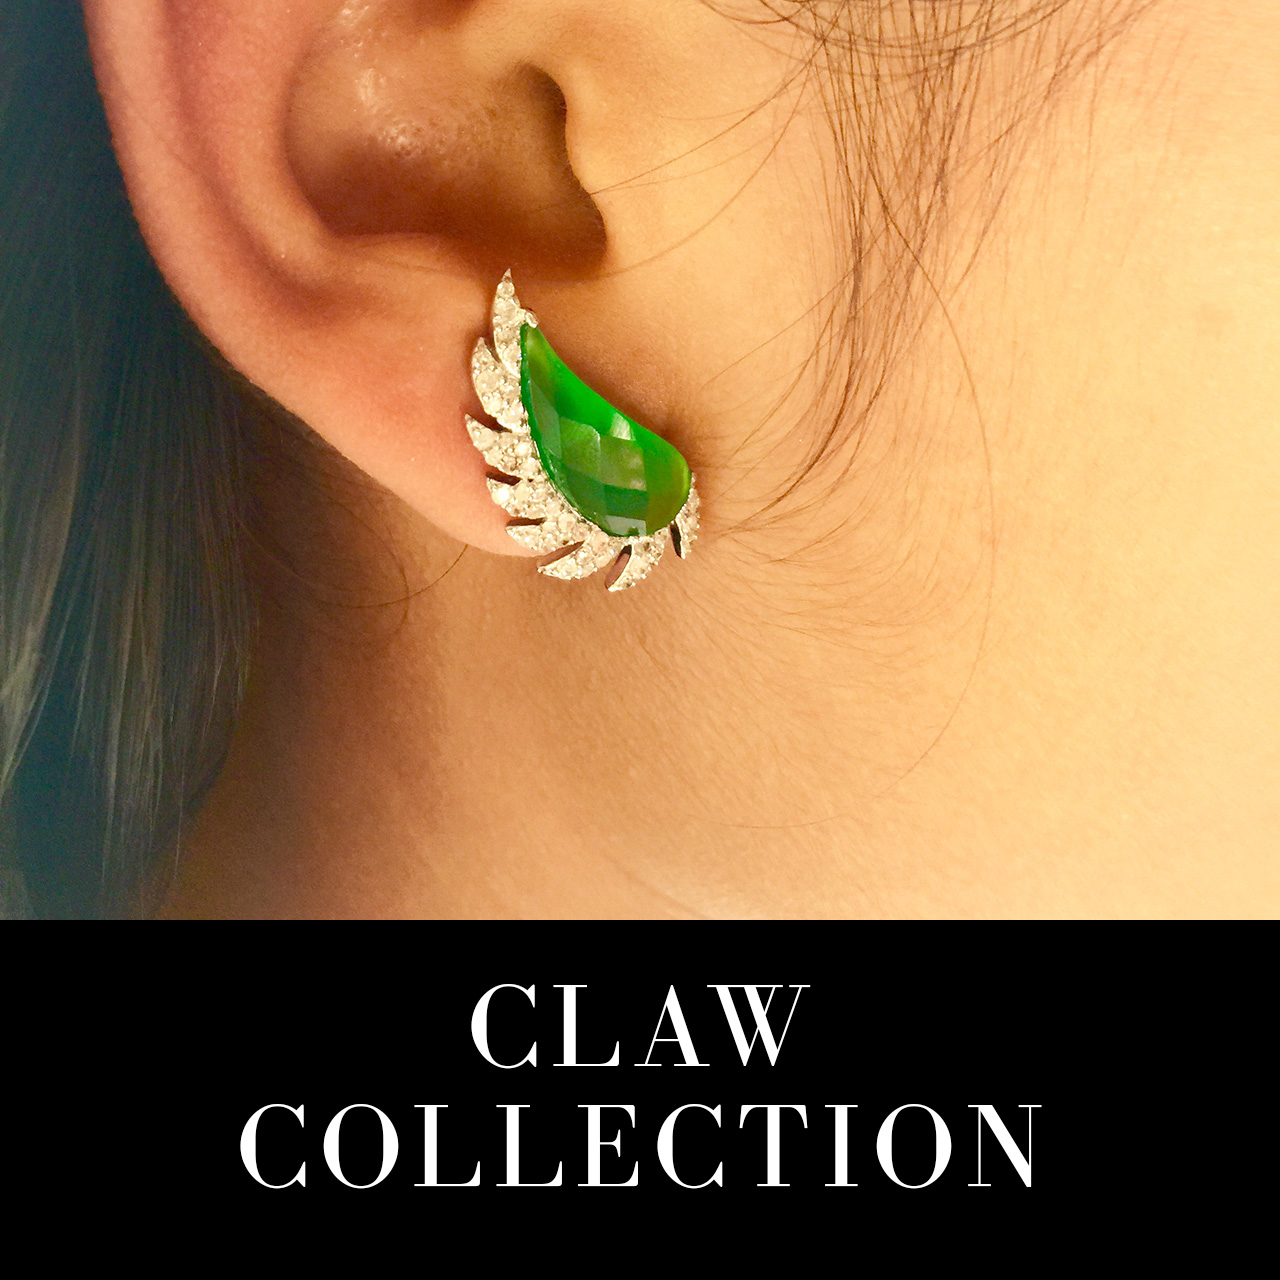 CLAW COLLECTION